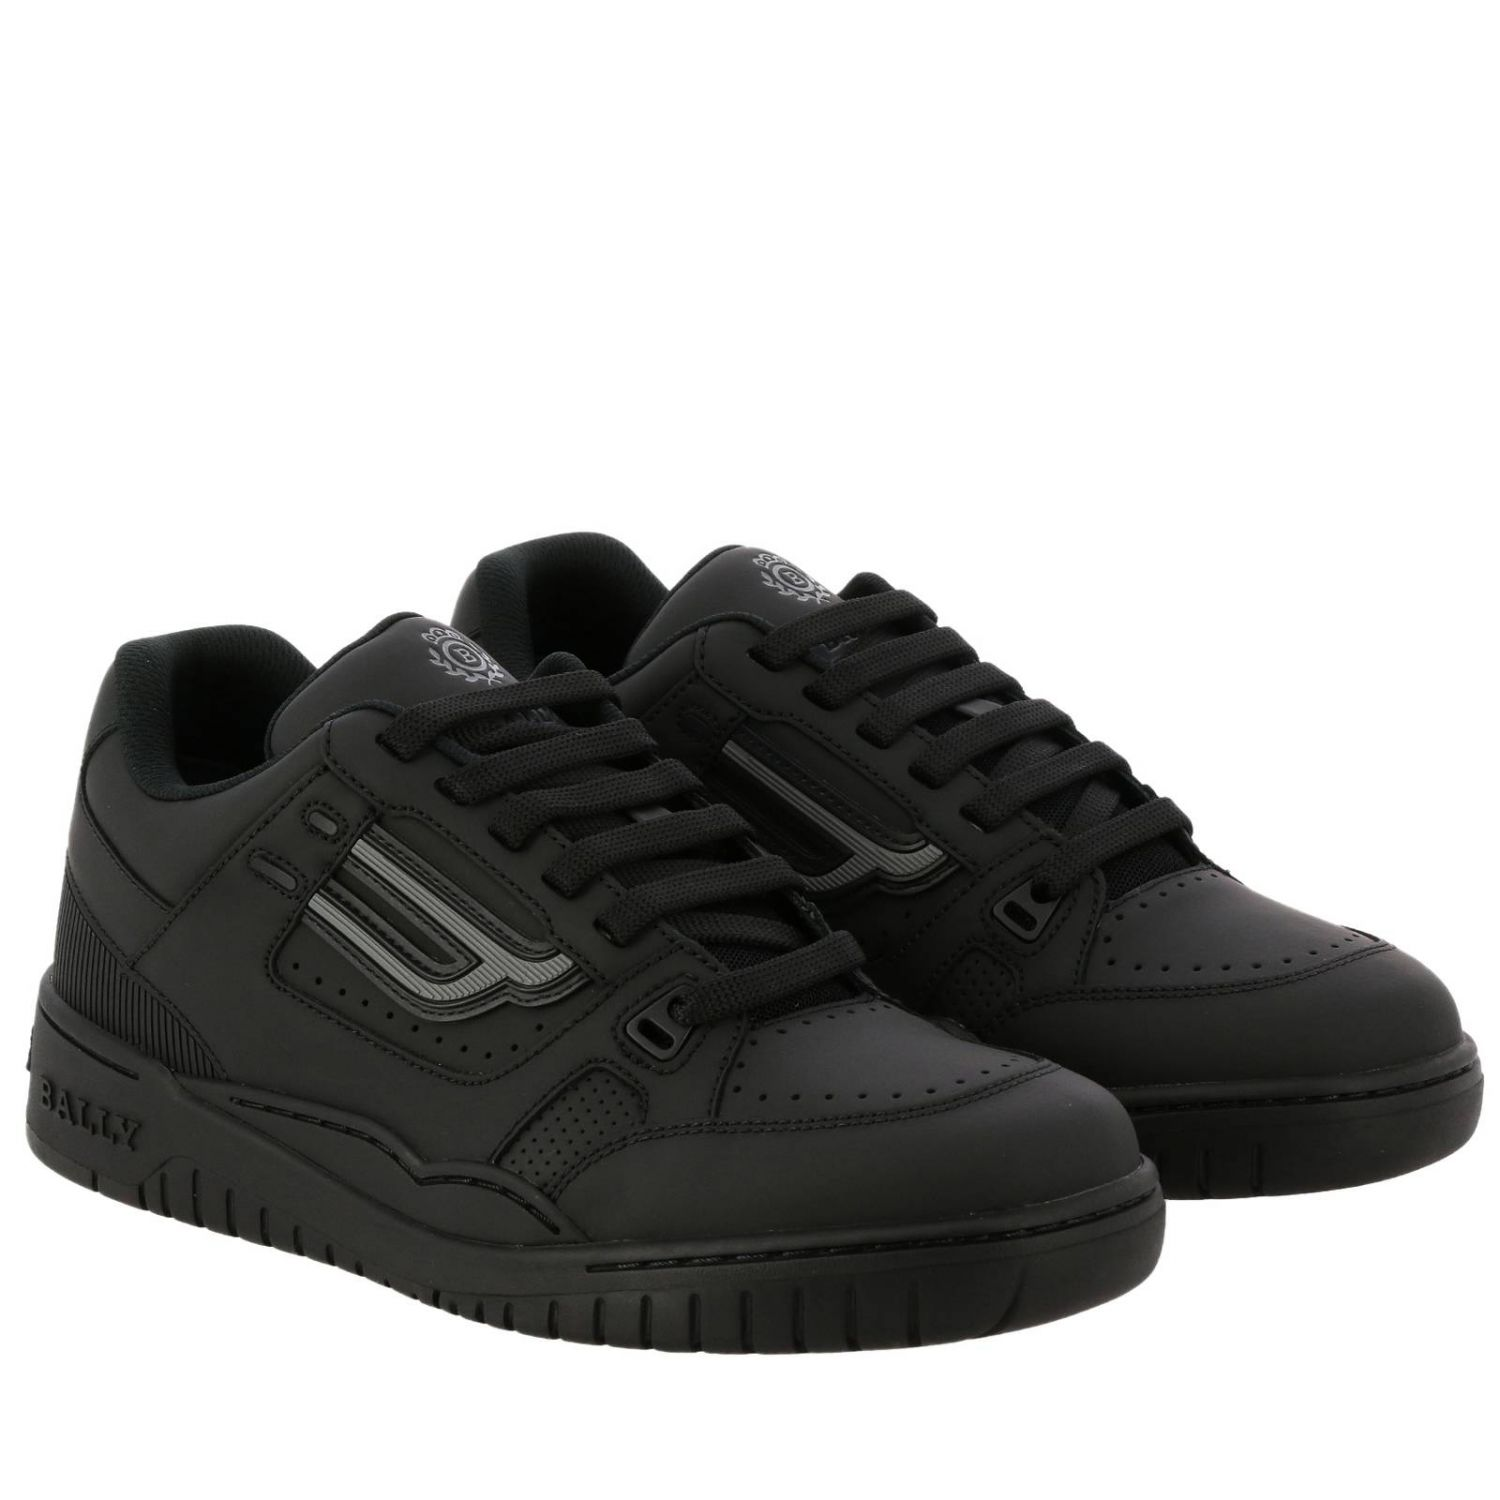 Kuba Bally sneakers in leather with micro holes and maxi rubber logo black 2